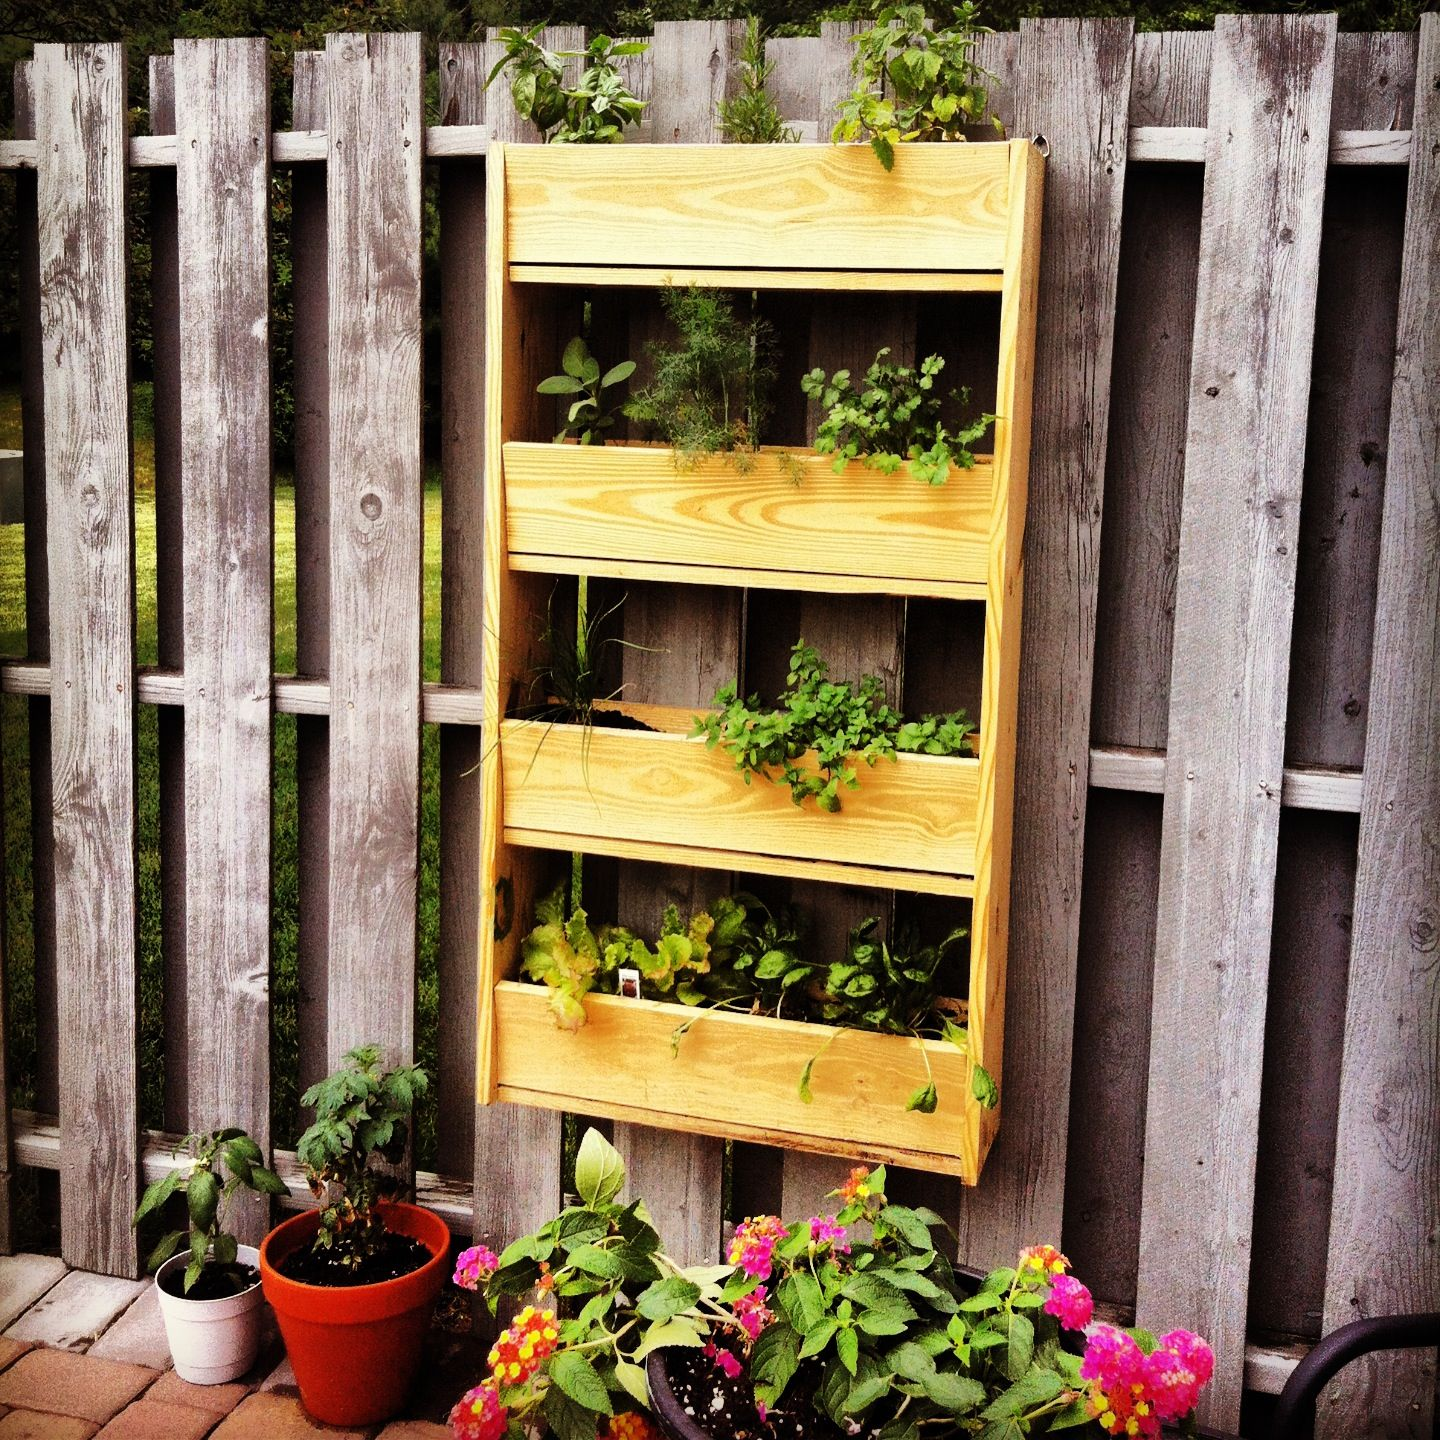 Hanging Herb Garden. $30 In Supplies From Home Depot